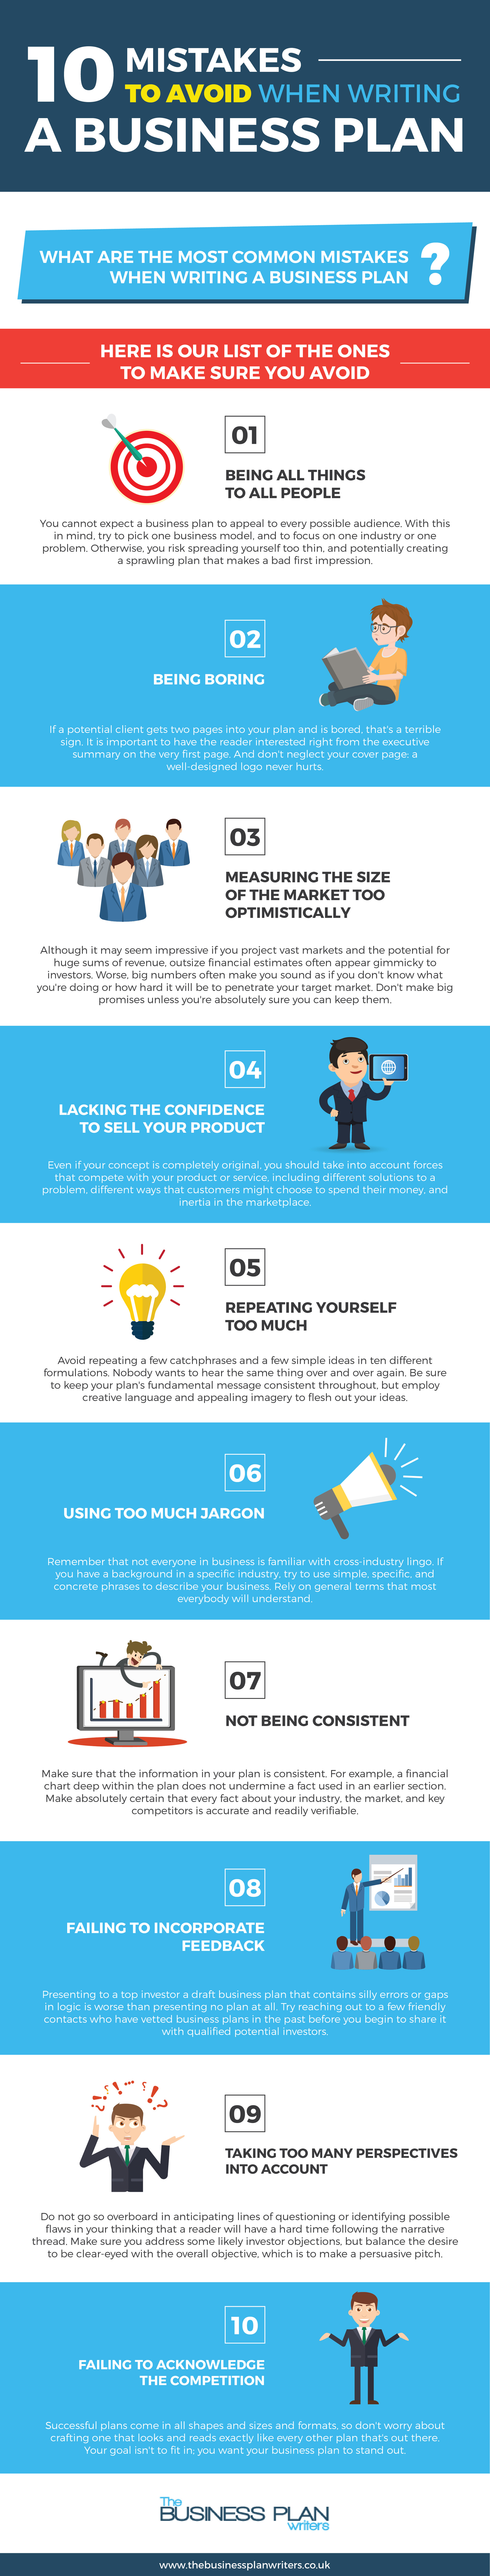 10 Mistakes to Avoid When Writing a Business Plan [Infographic]